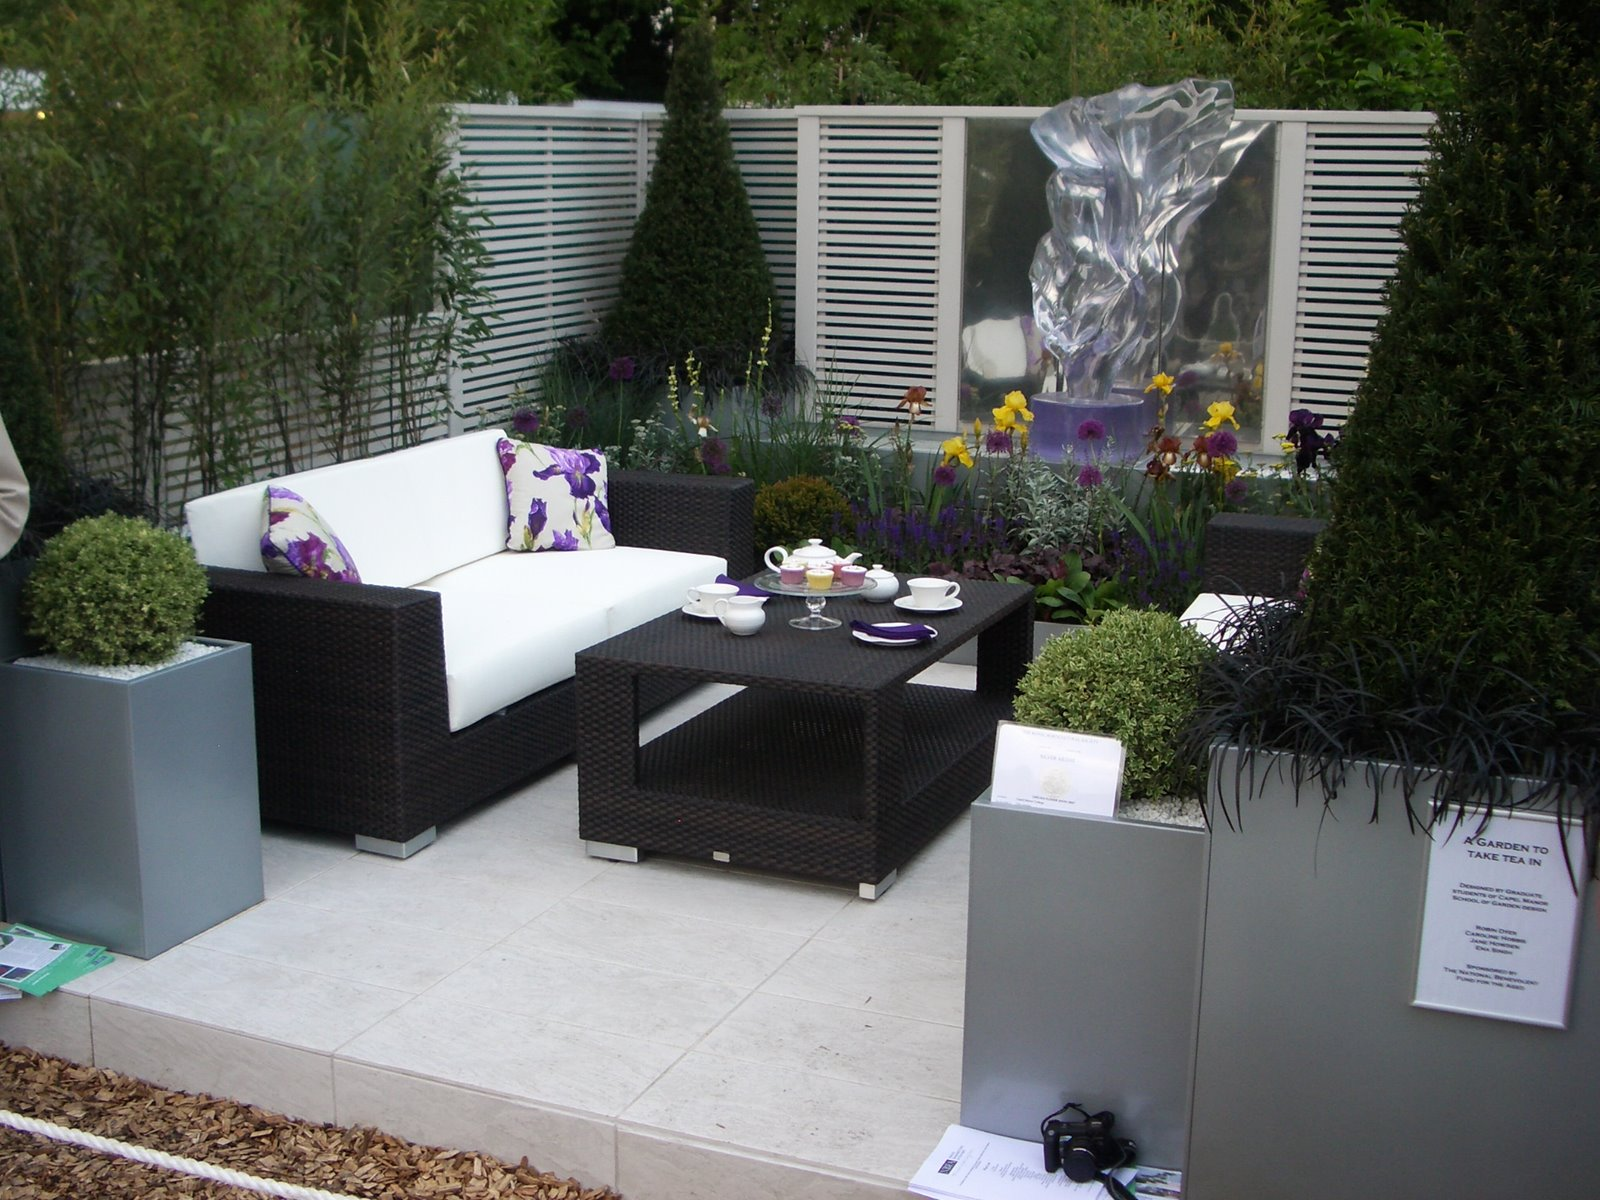 Modern black wicker outdoor furniture for outdoor patio with white cushion and cool table